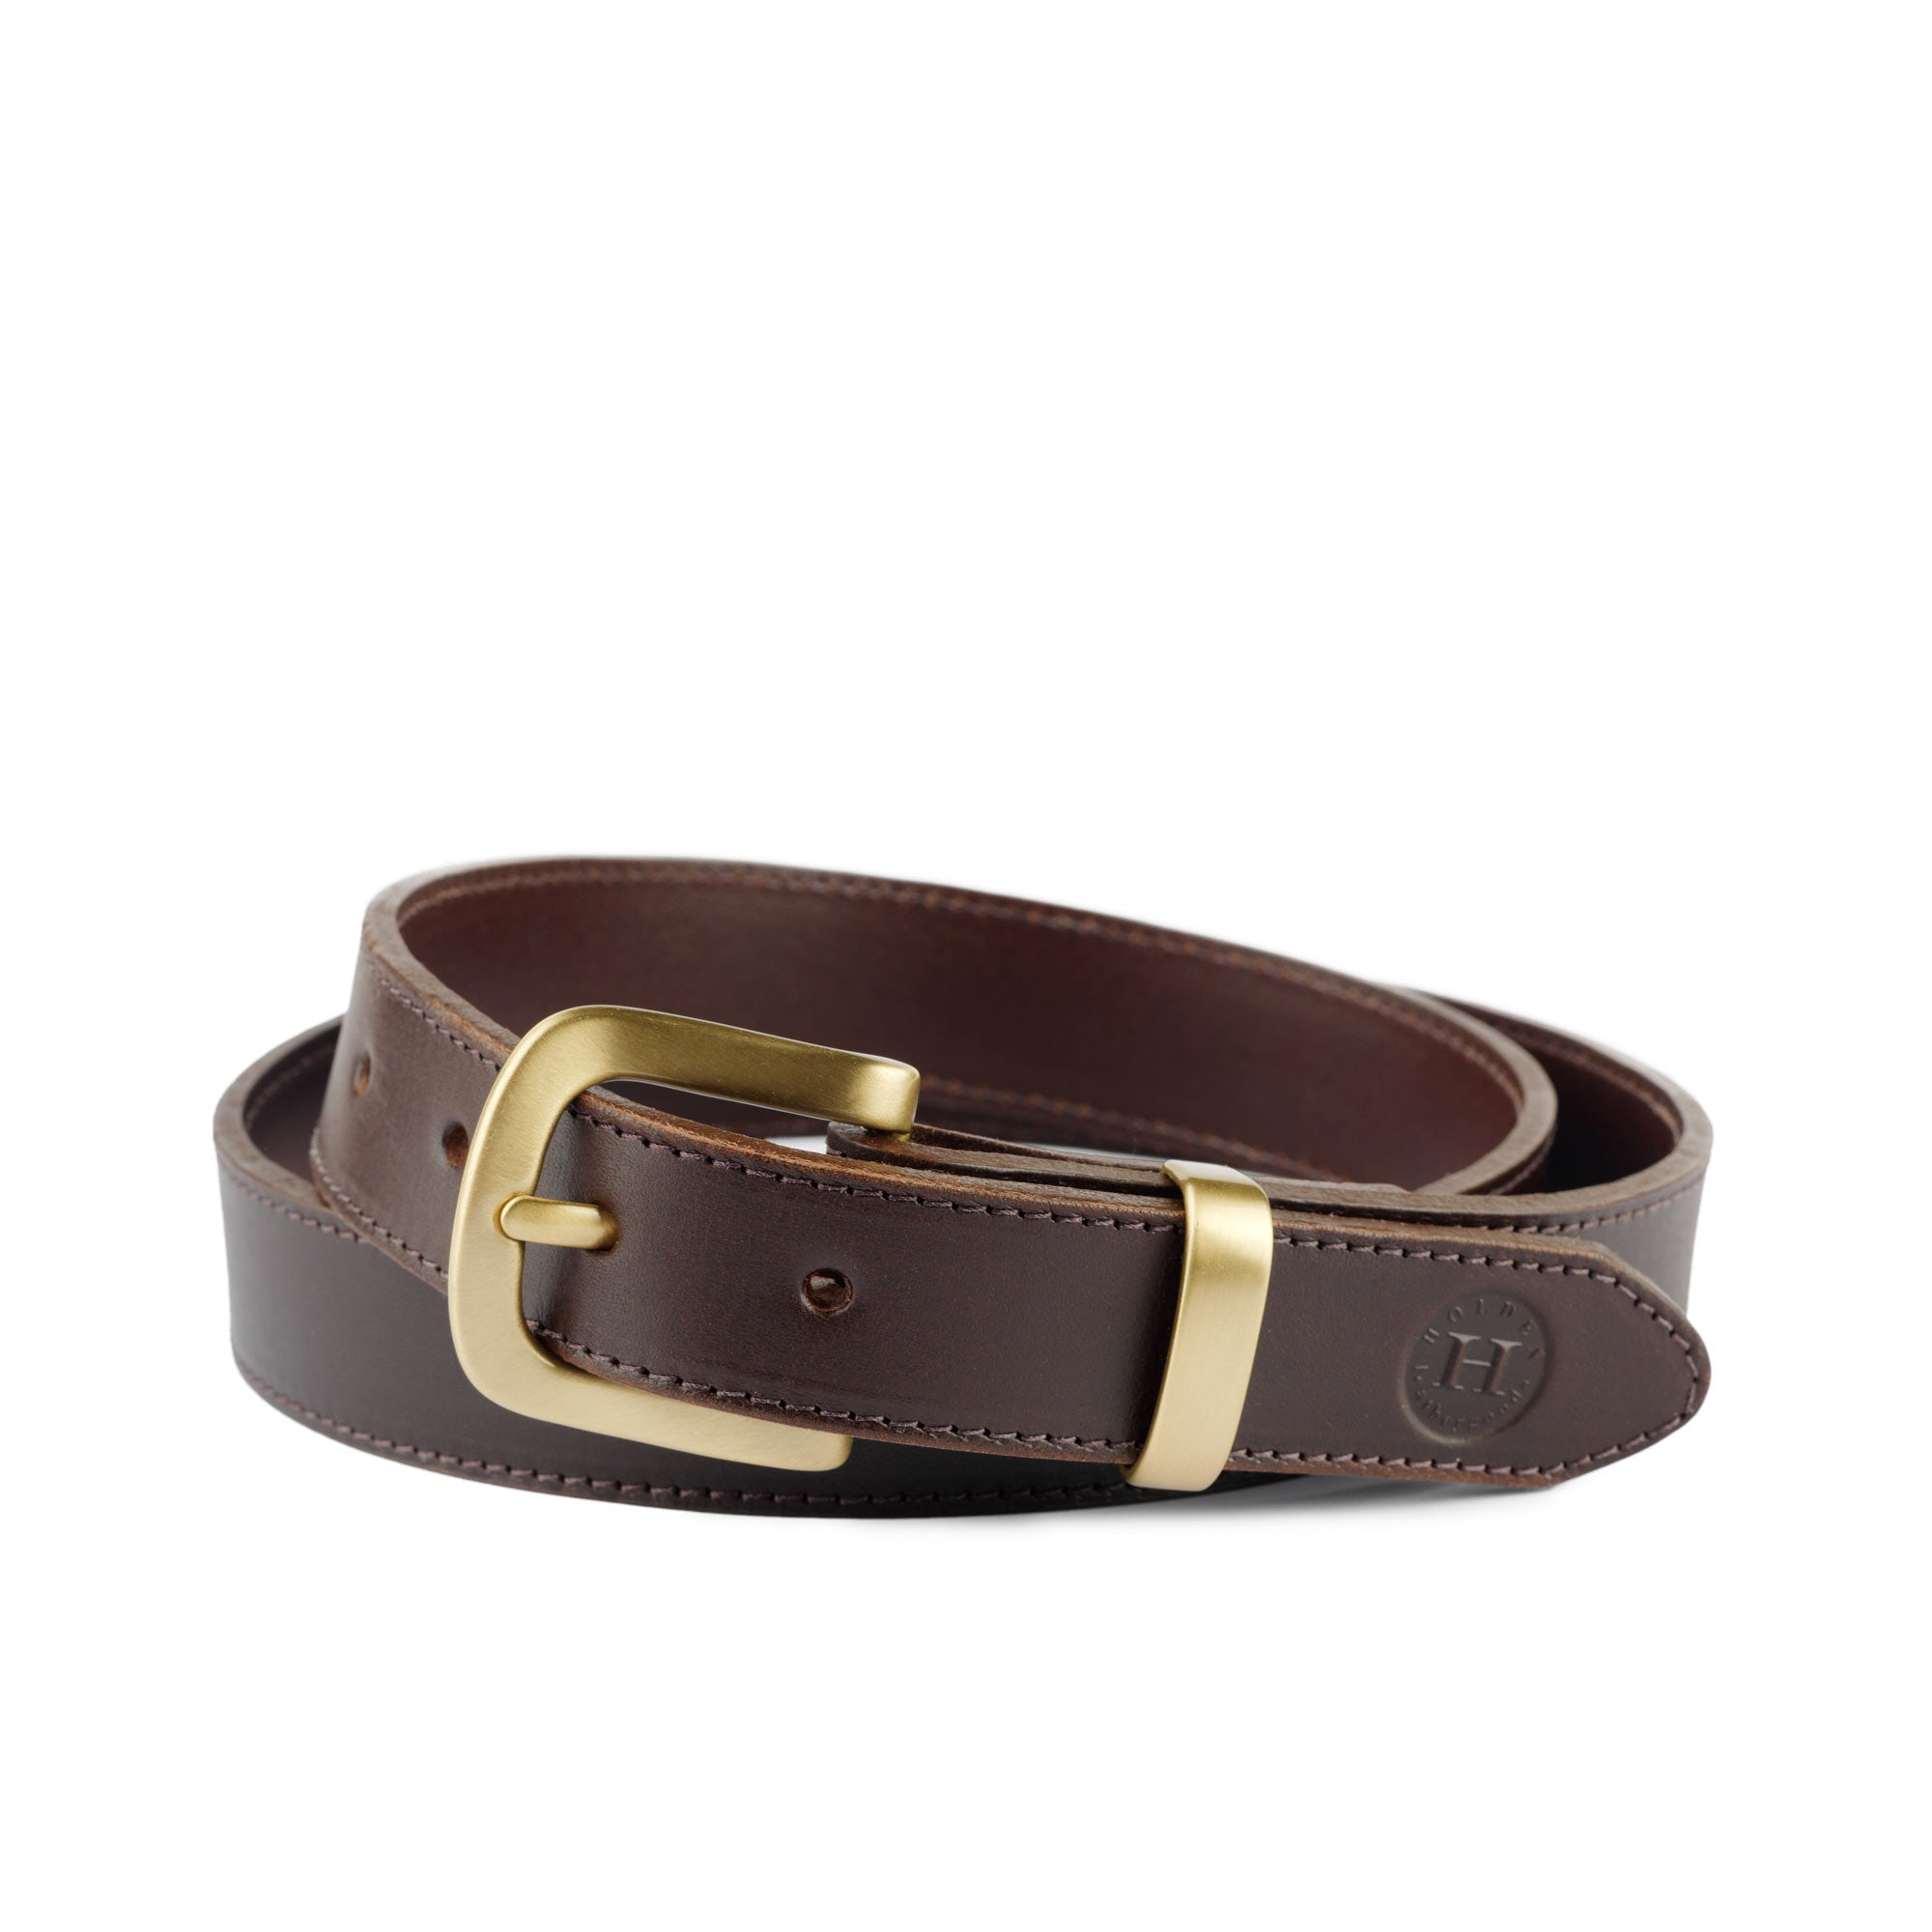 Holden Casual Leather Belt CB1 Brown - Holden Leathergoods, leather bags handmade in Ireland